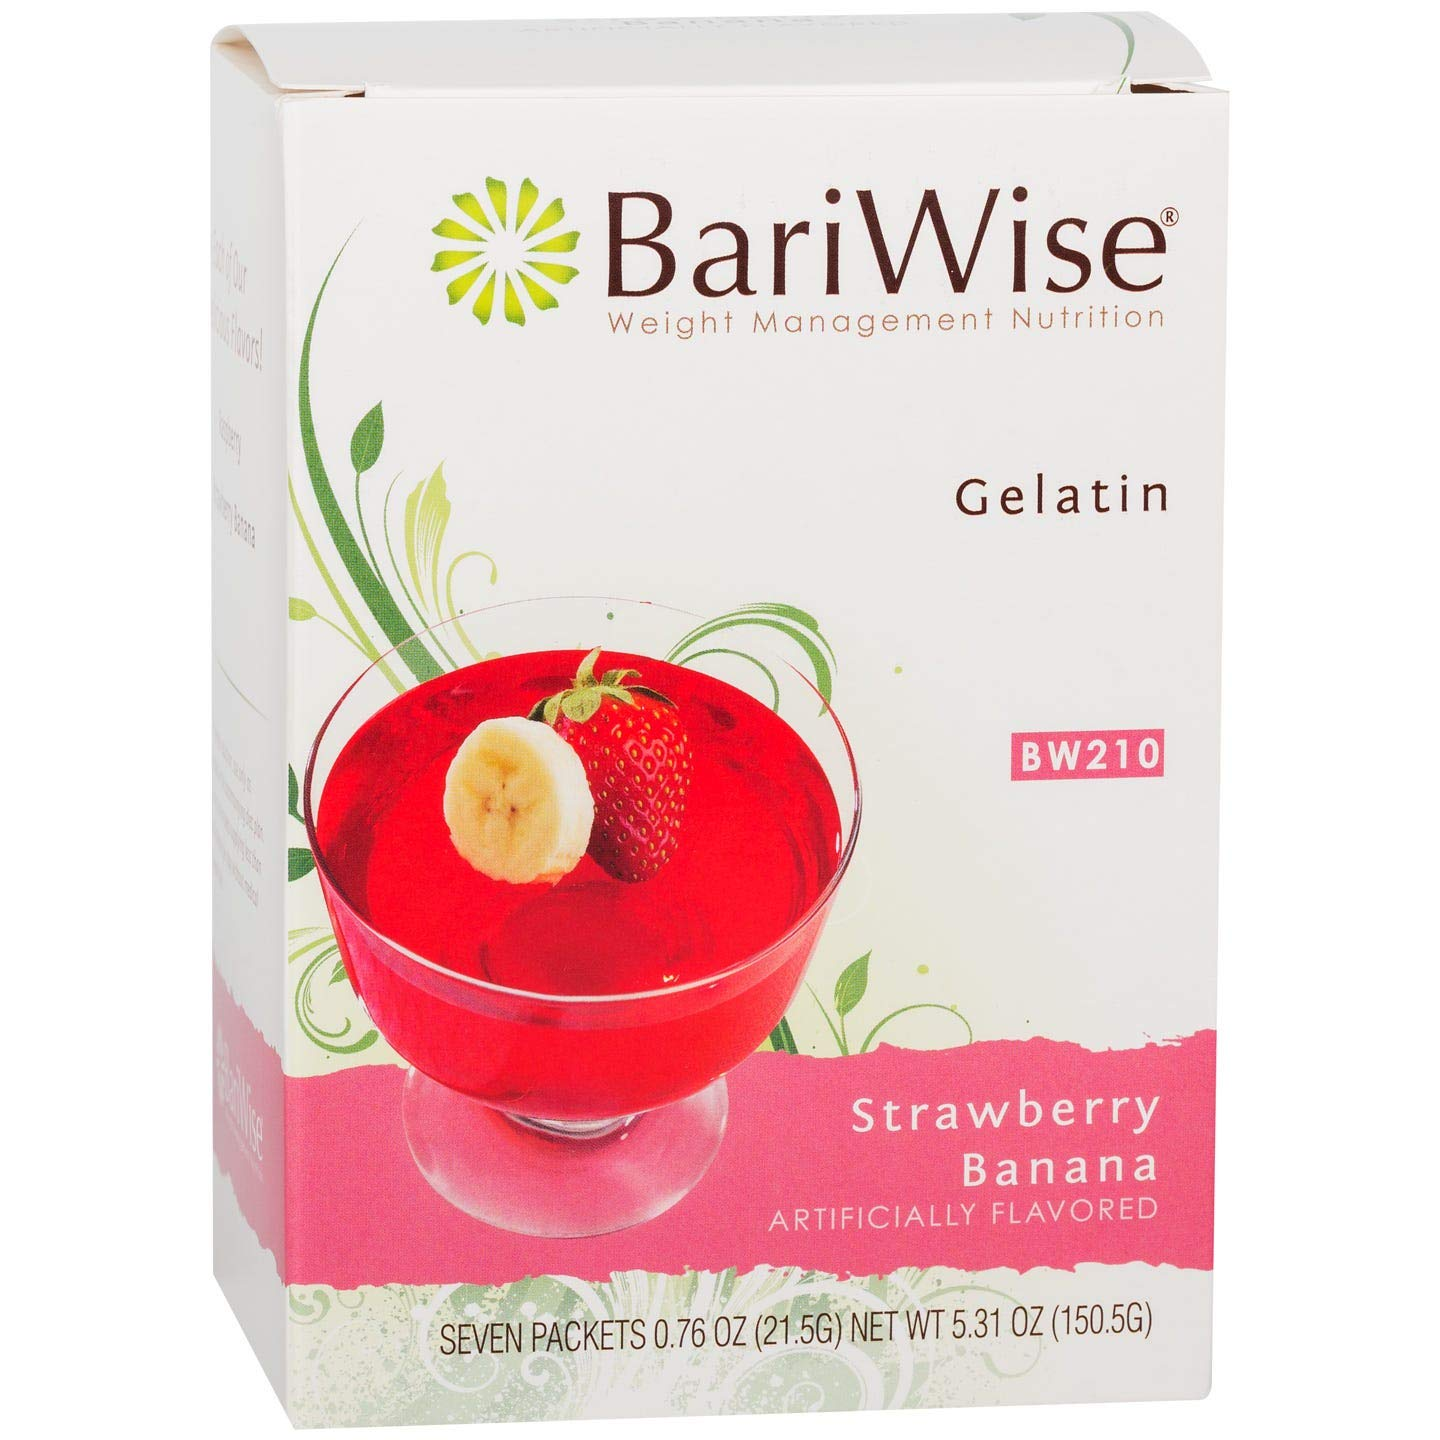 BariWise Low-Carb High Protein Diet Gelatin - Strawberry Banana (7 Servings/Box) - Fat Free, Sugar Free, Low Carb, Low Calorie, Aspartame Free